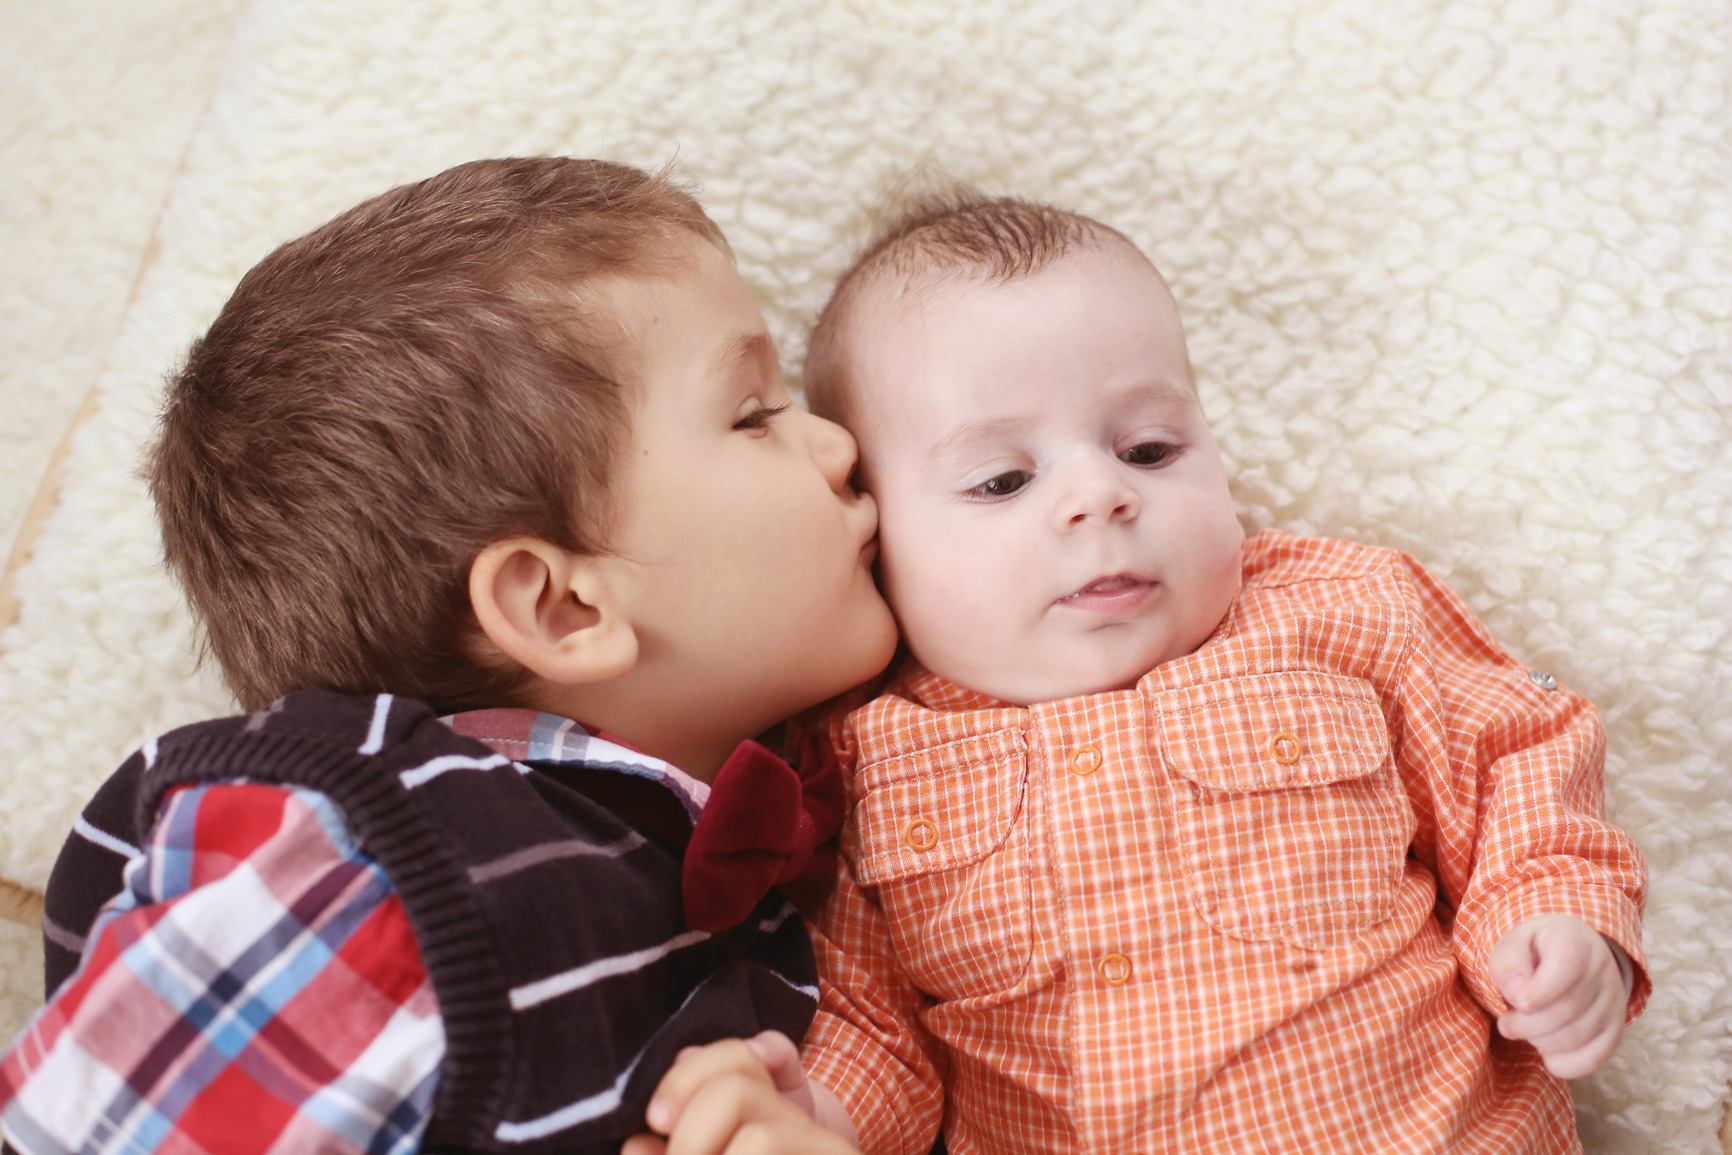 Big brother kissing the baby